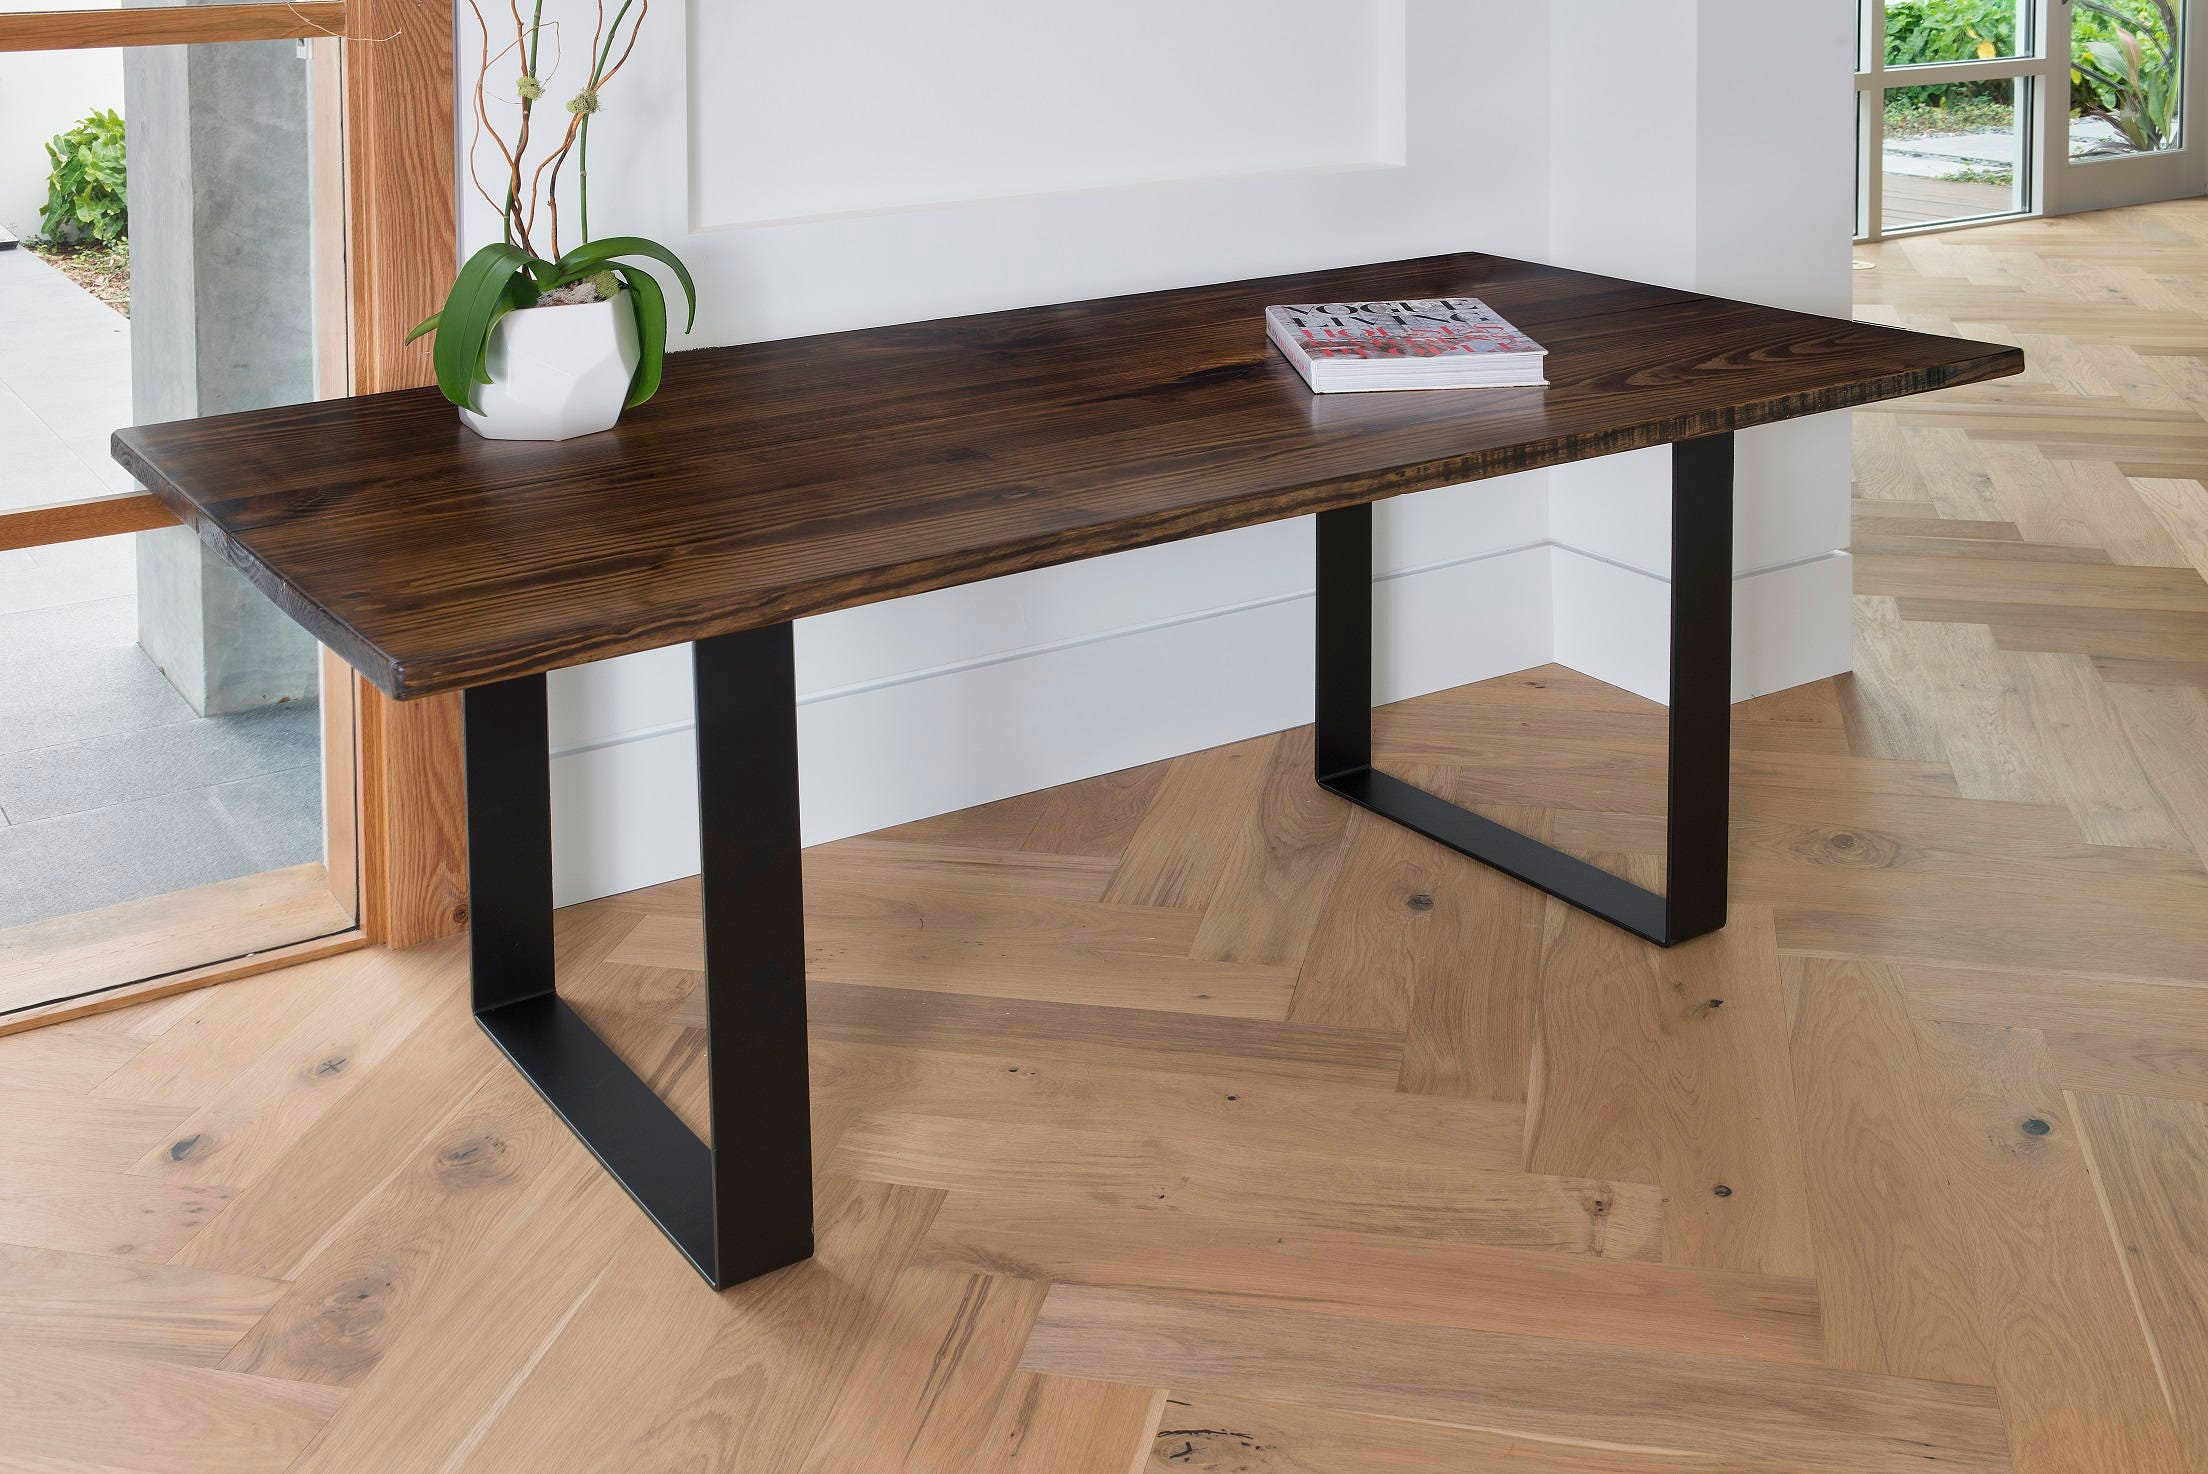 Sale dining table kitchen table dining u legs dark walnut cafe dining table kitchen table dining u legs dark walnut cafe table bistro restaurant table steel legs dinette walnut watchthetrailerfo